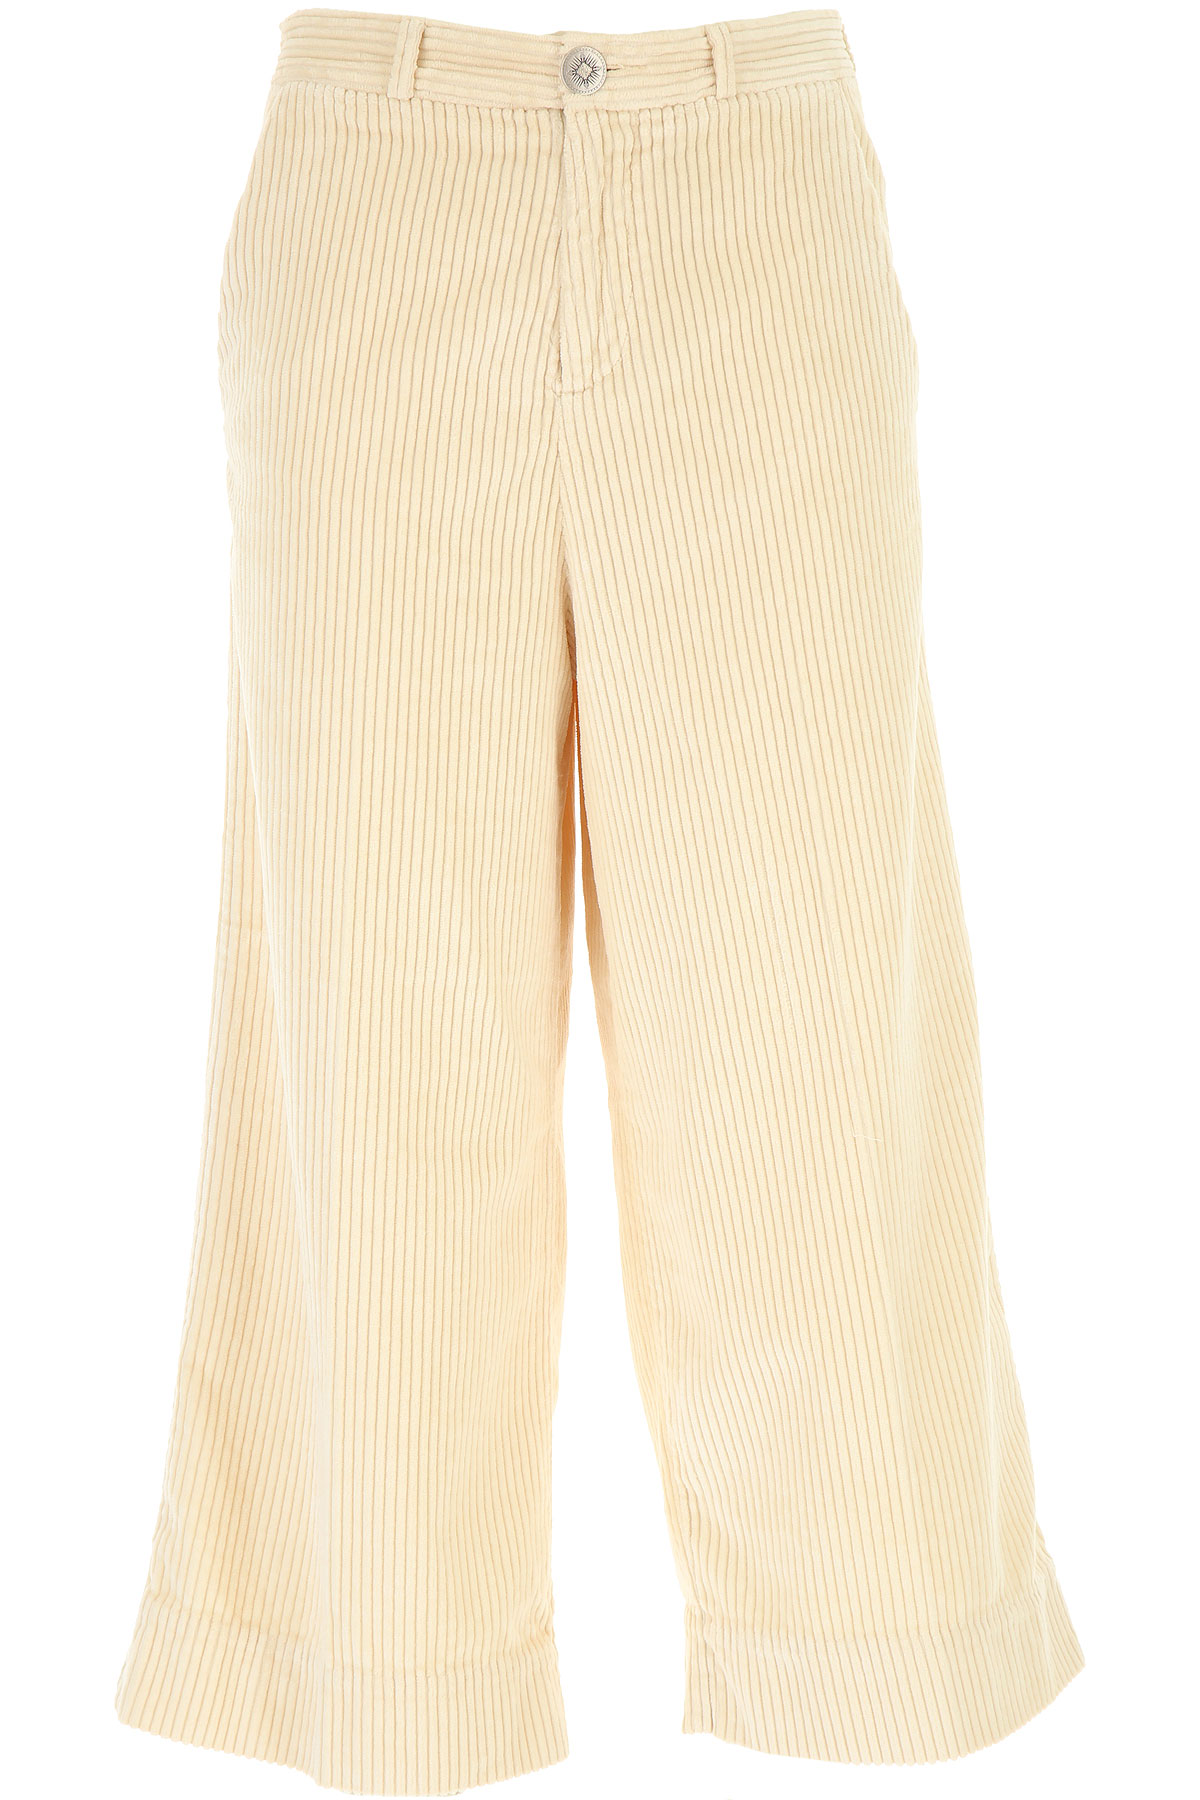 White Sand Pants for Women On Sale, Ivory, Cotton, 2019, 26 28